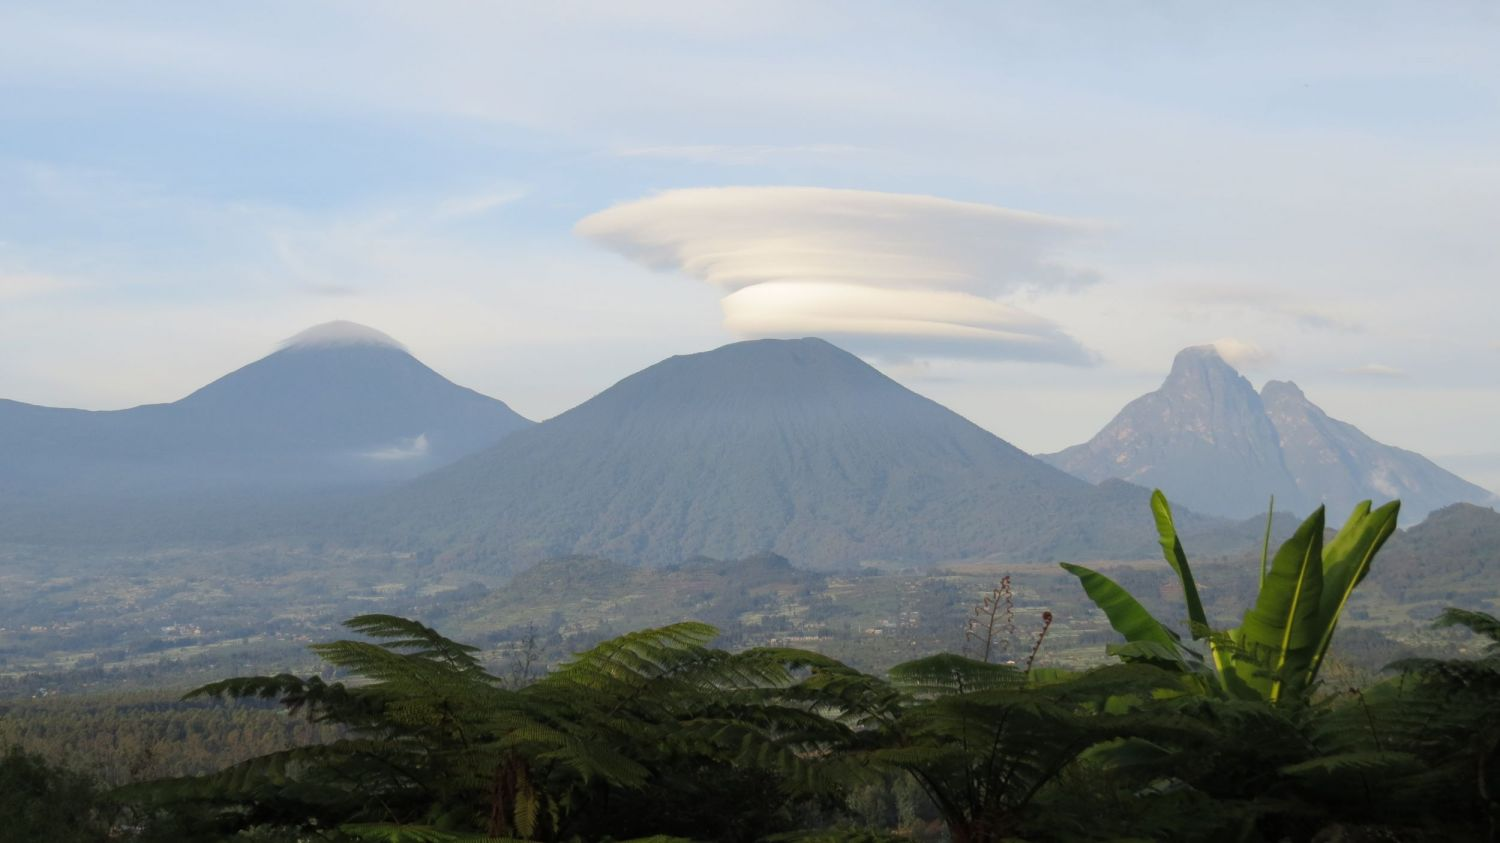 The five volcanos of Volcanos National Park are the main habitat of Rwanda's mountain Gorillas